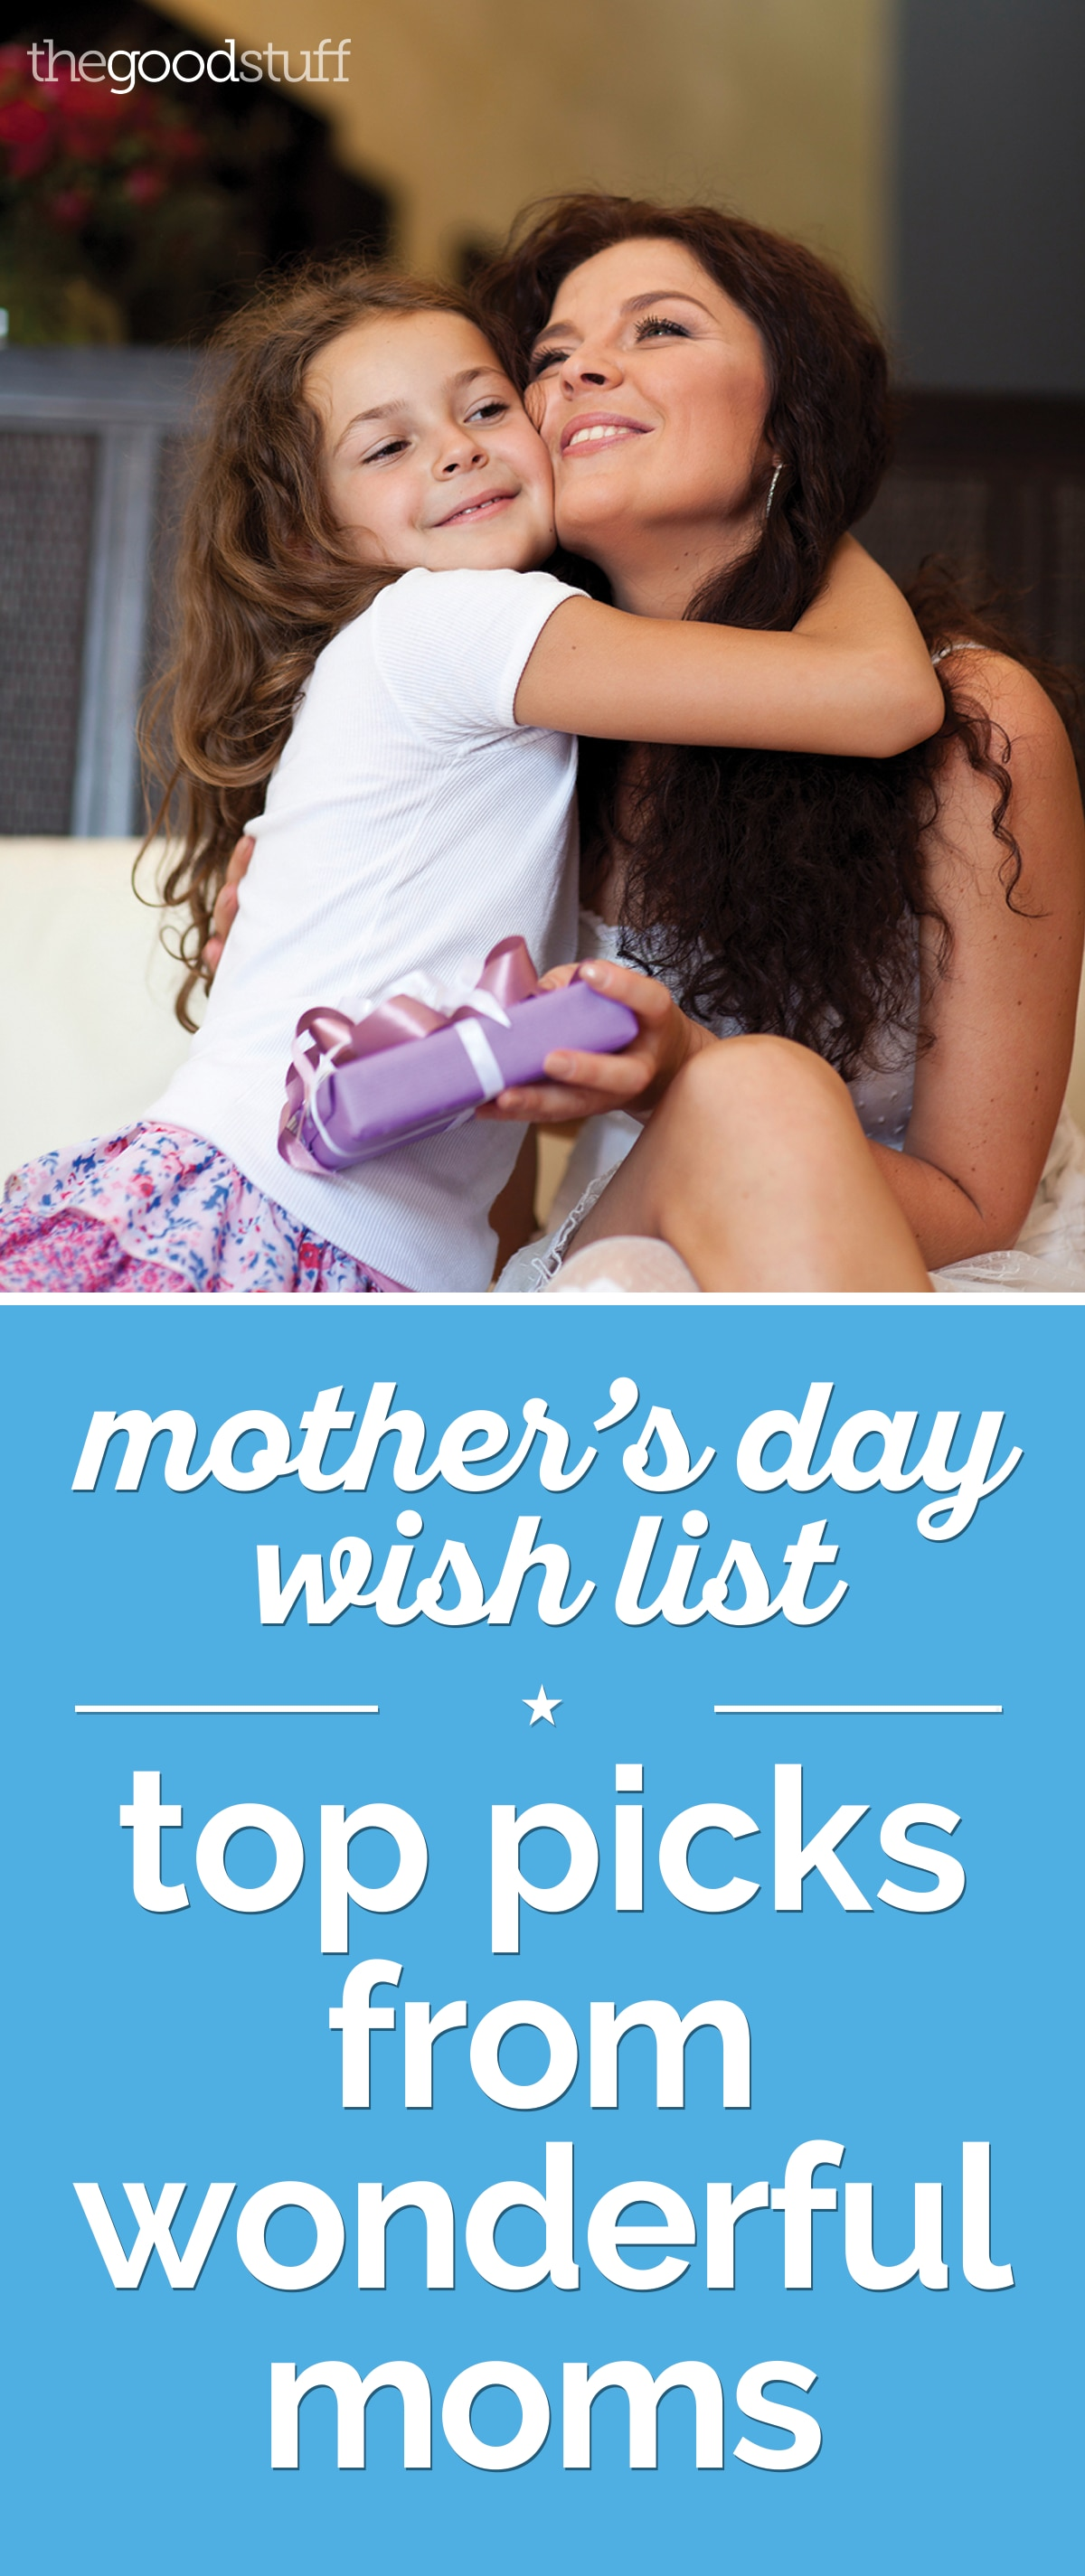 Mother's Day Wish List: Top Picks from Wonderful Moms | thegoodstuff